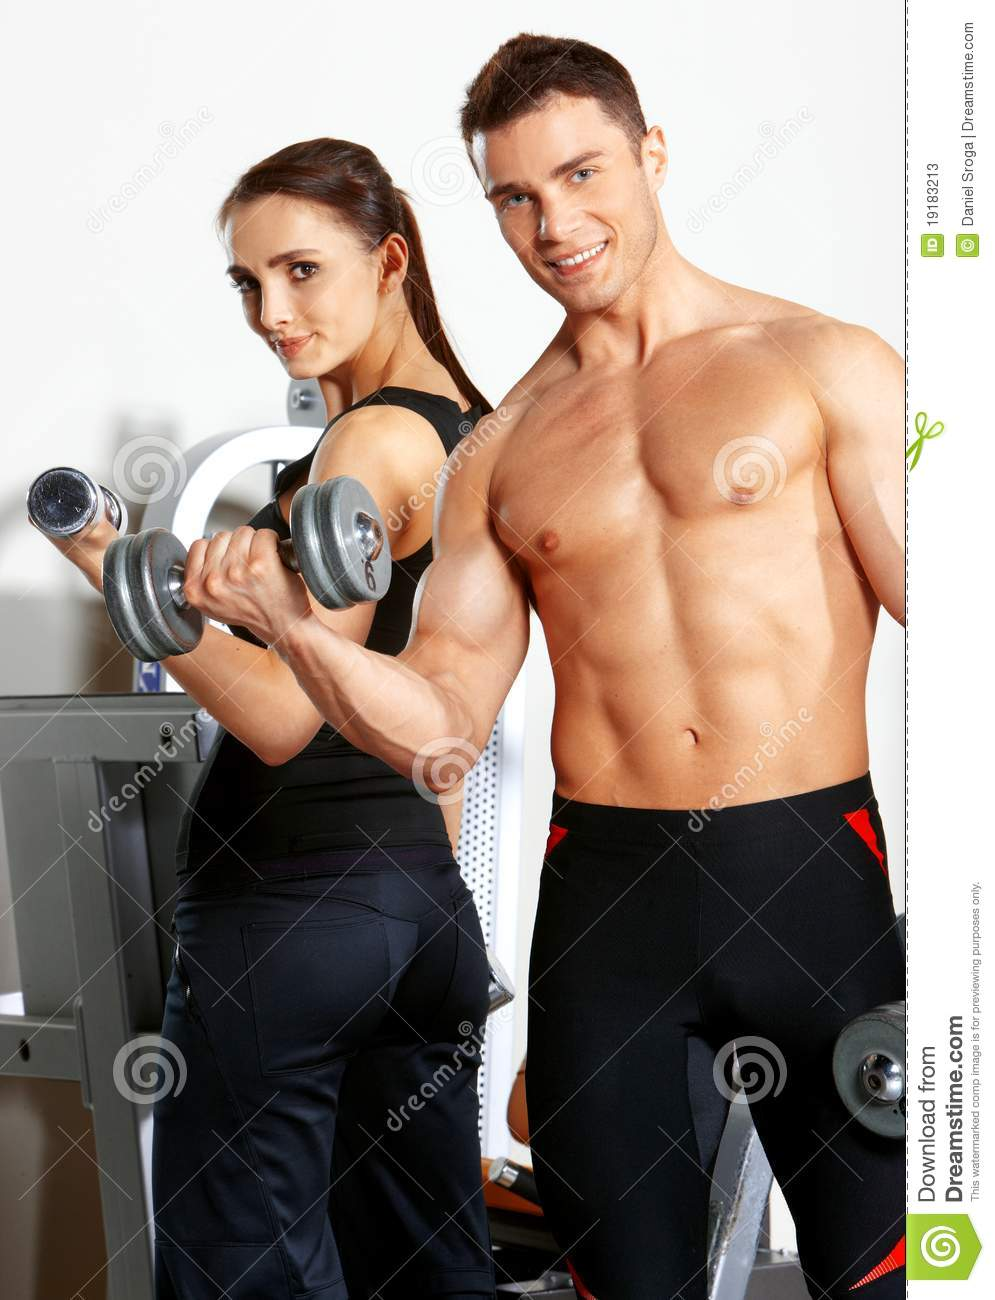 Couple at the gym stock image. Image of active, fitness